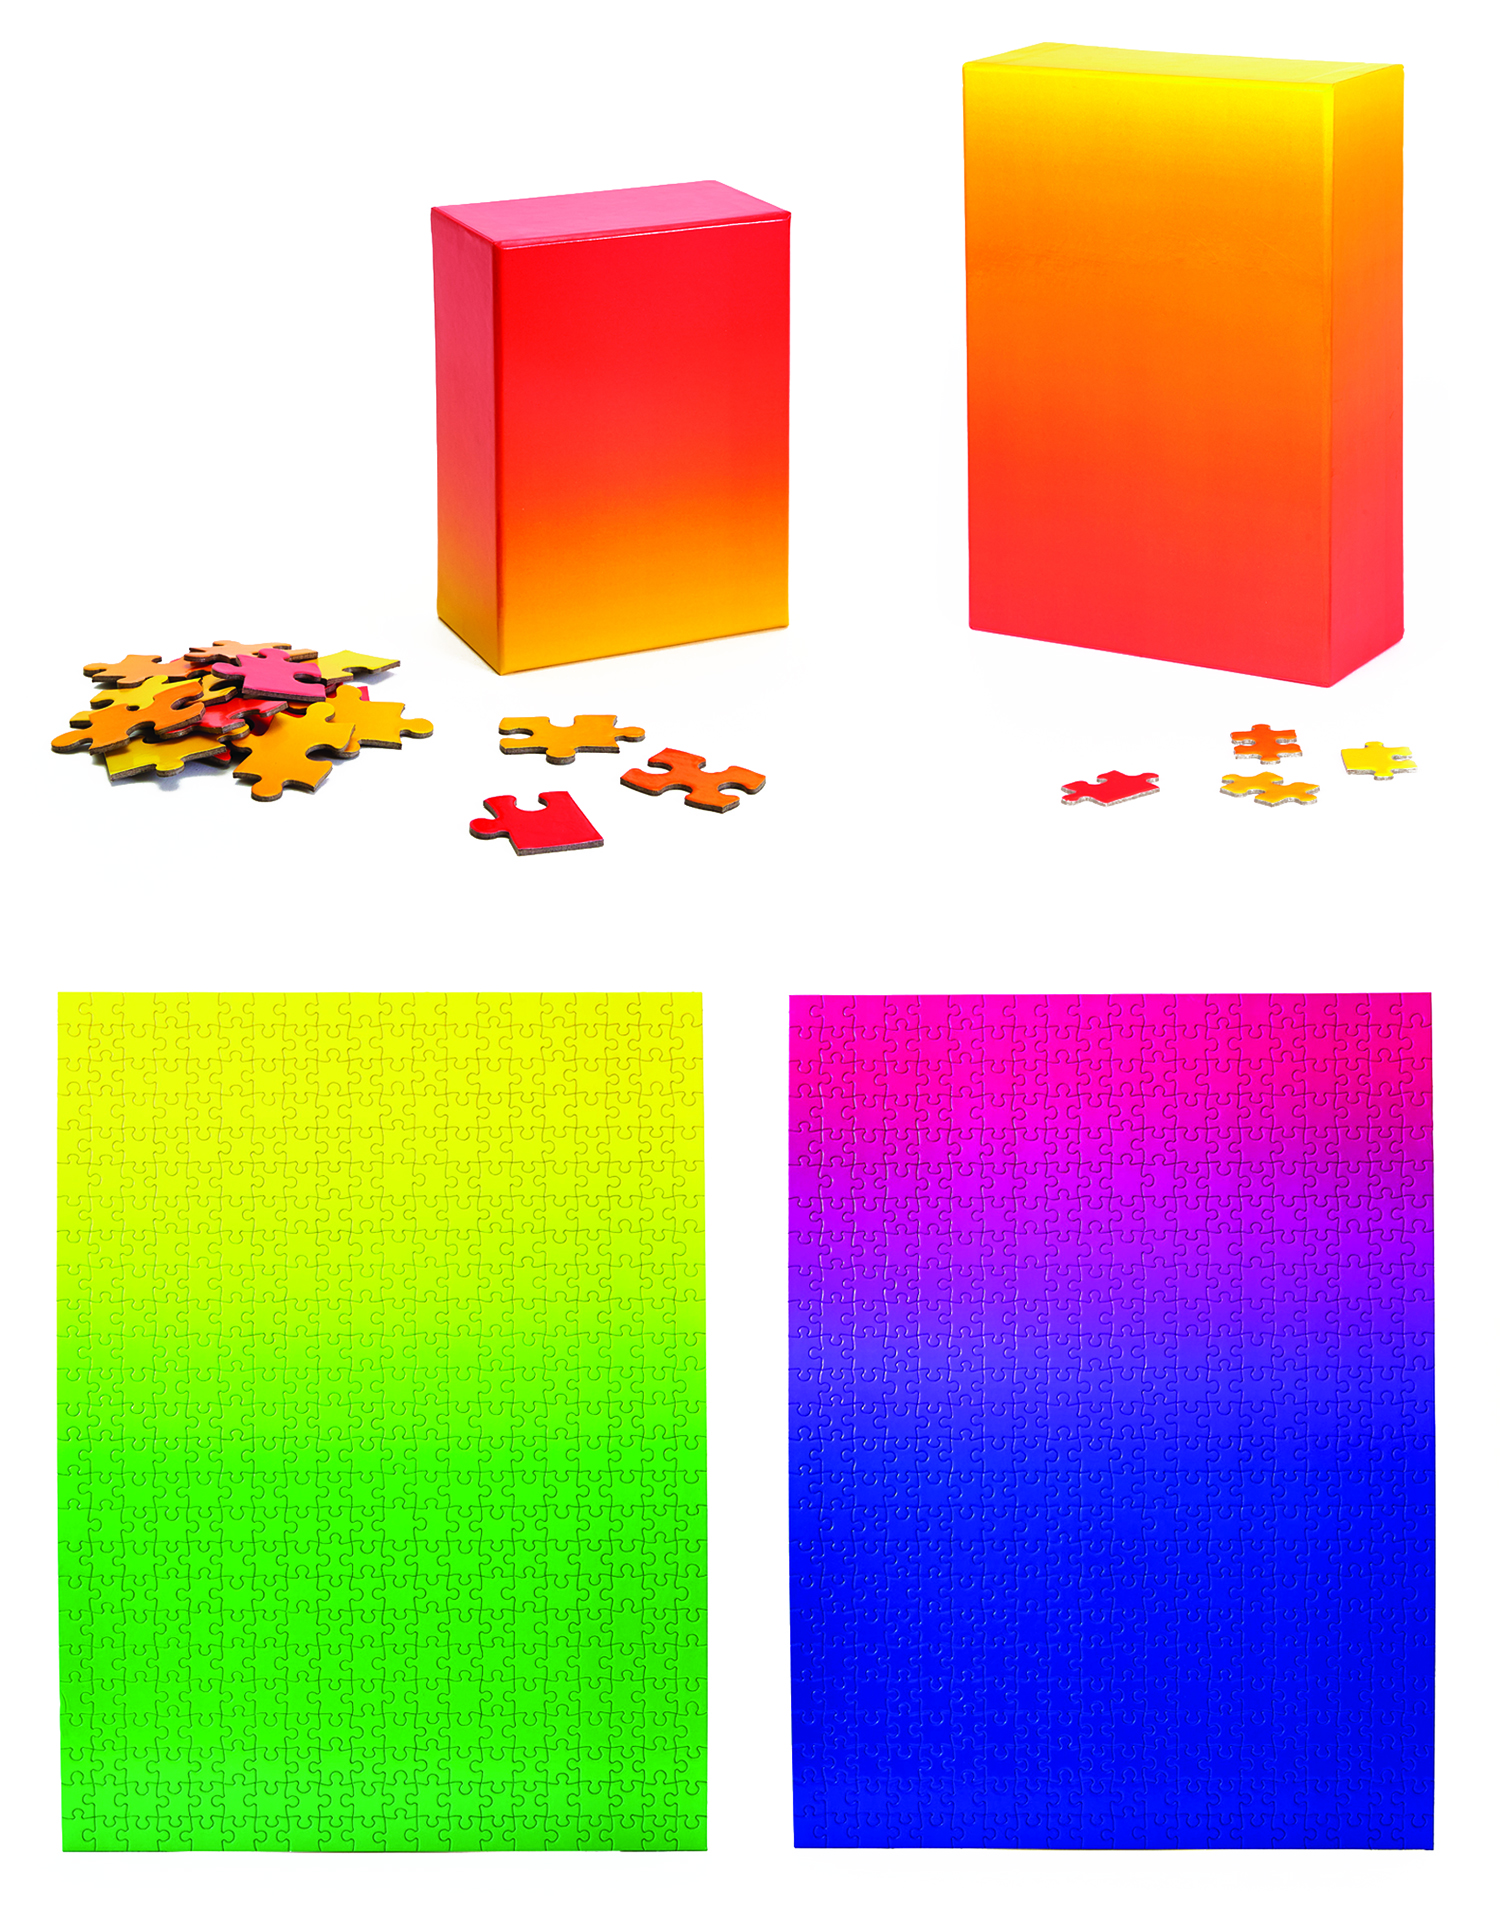 Curator: this is how you make a puzzle simpler and at the same time harder, loved the concept. - This gradient puzzle is a vibrant way to meditate on colour. The act of putting it together is slow and deliberate, where the colour of each piece is used to locate its proper position.